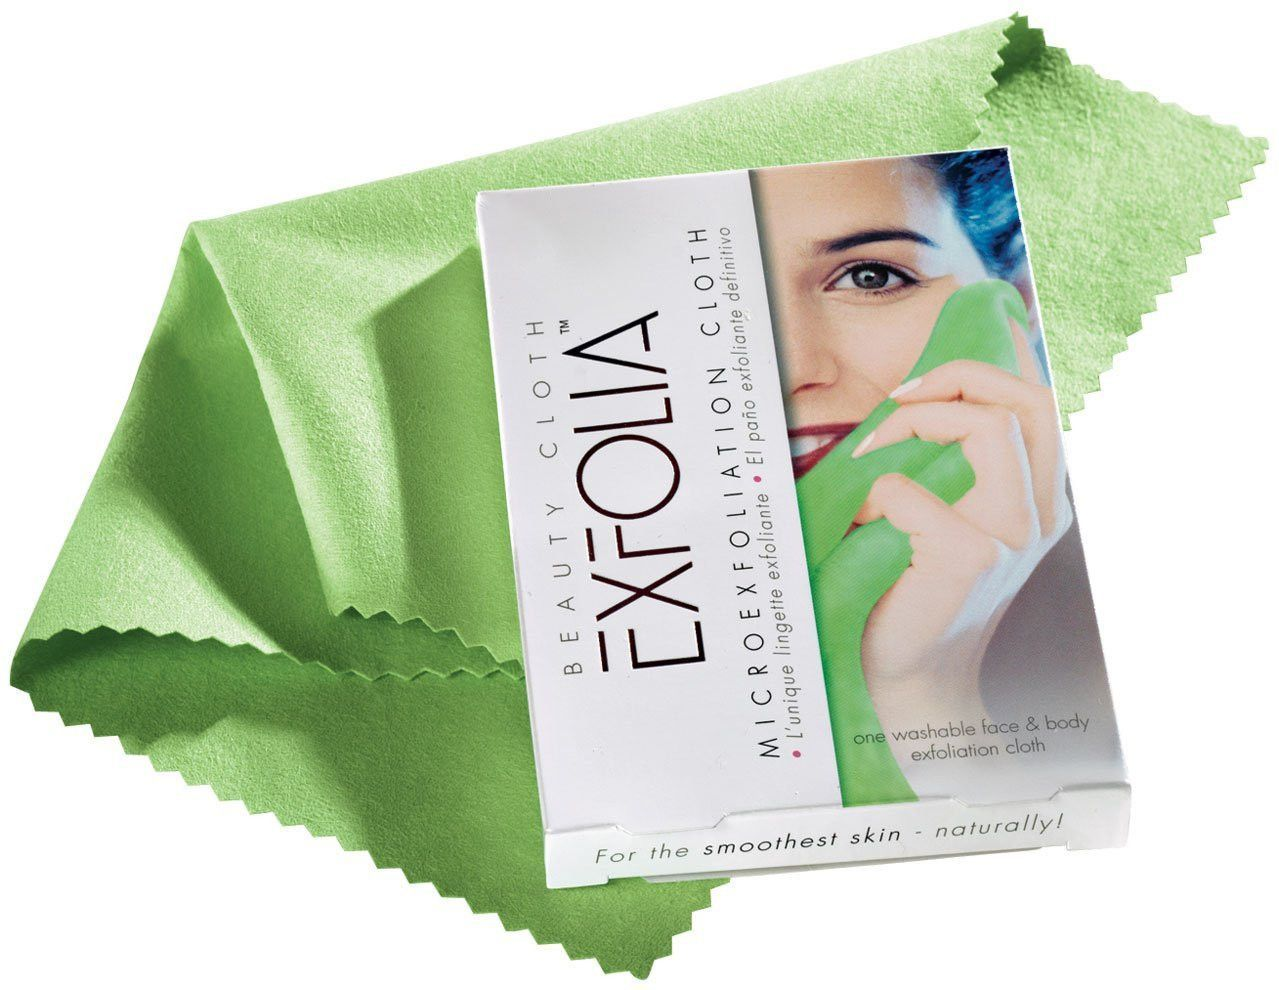 Not give microscrub contact cleaner facial cosmetic soap think